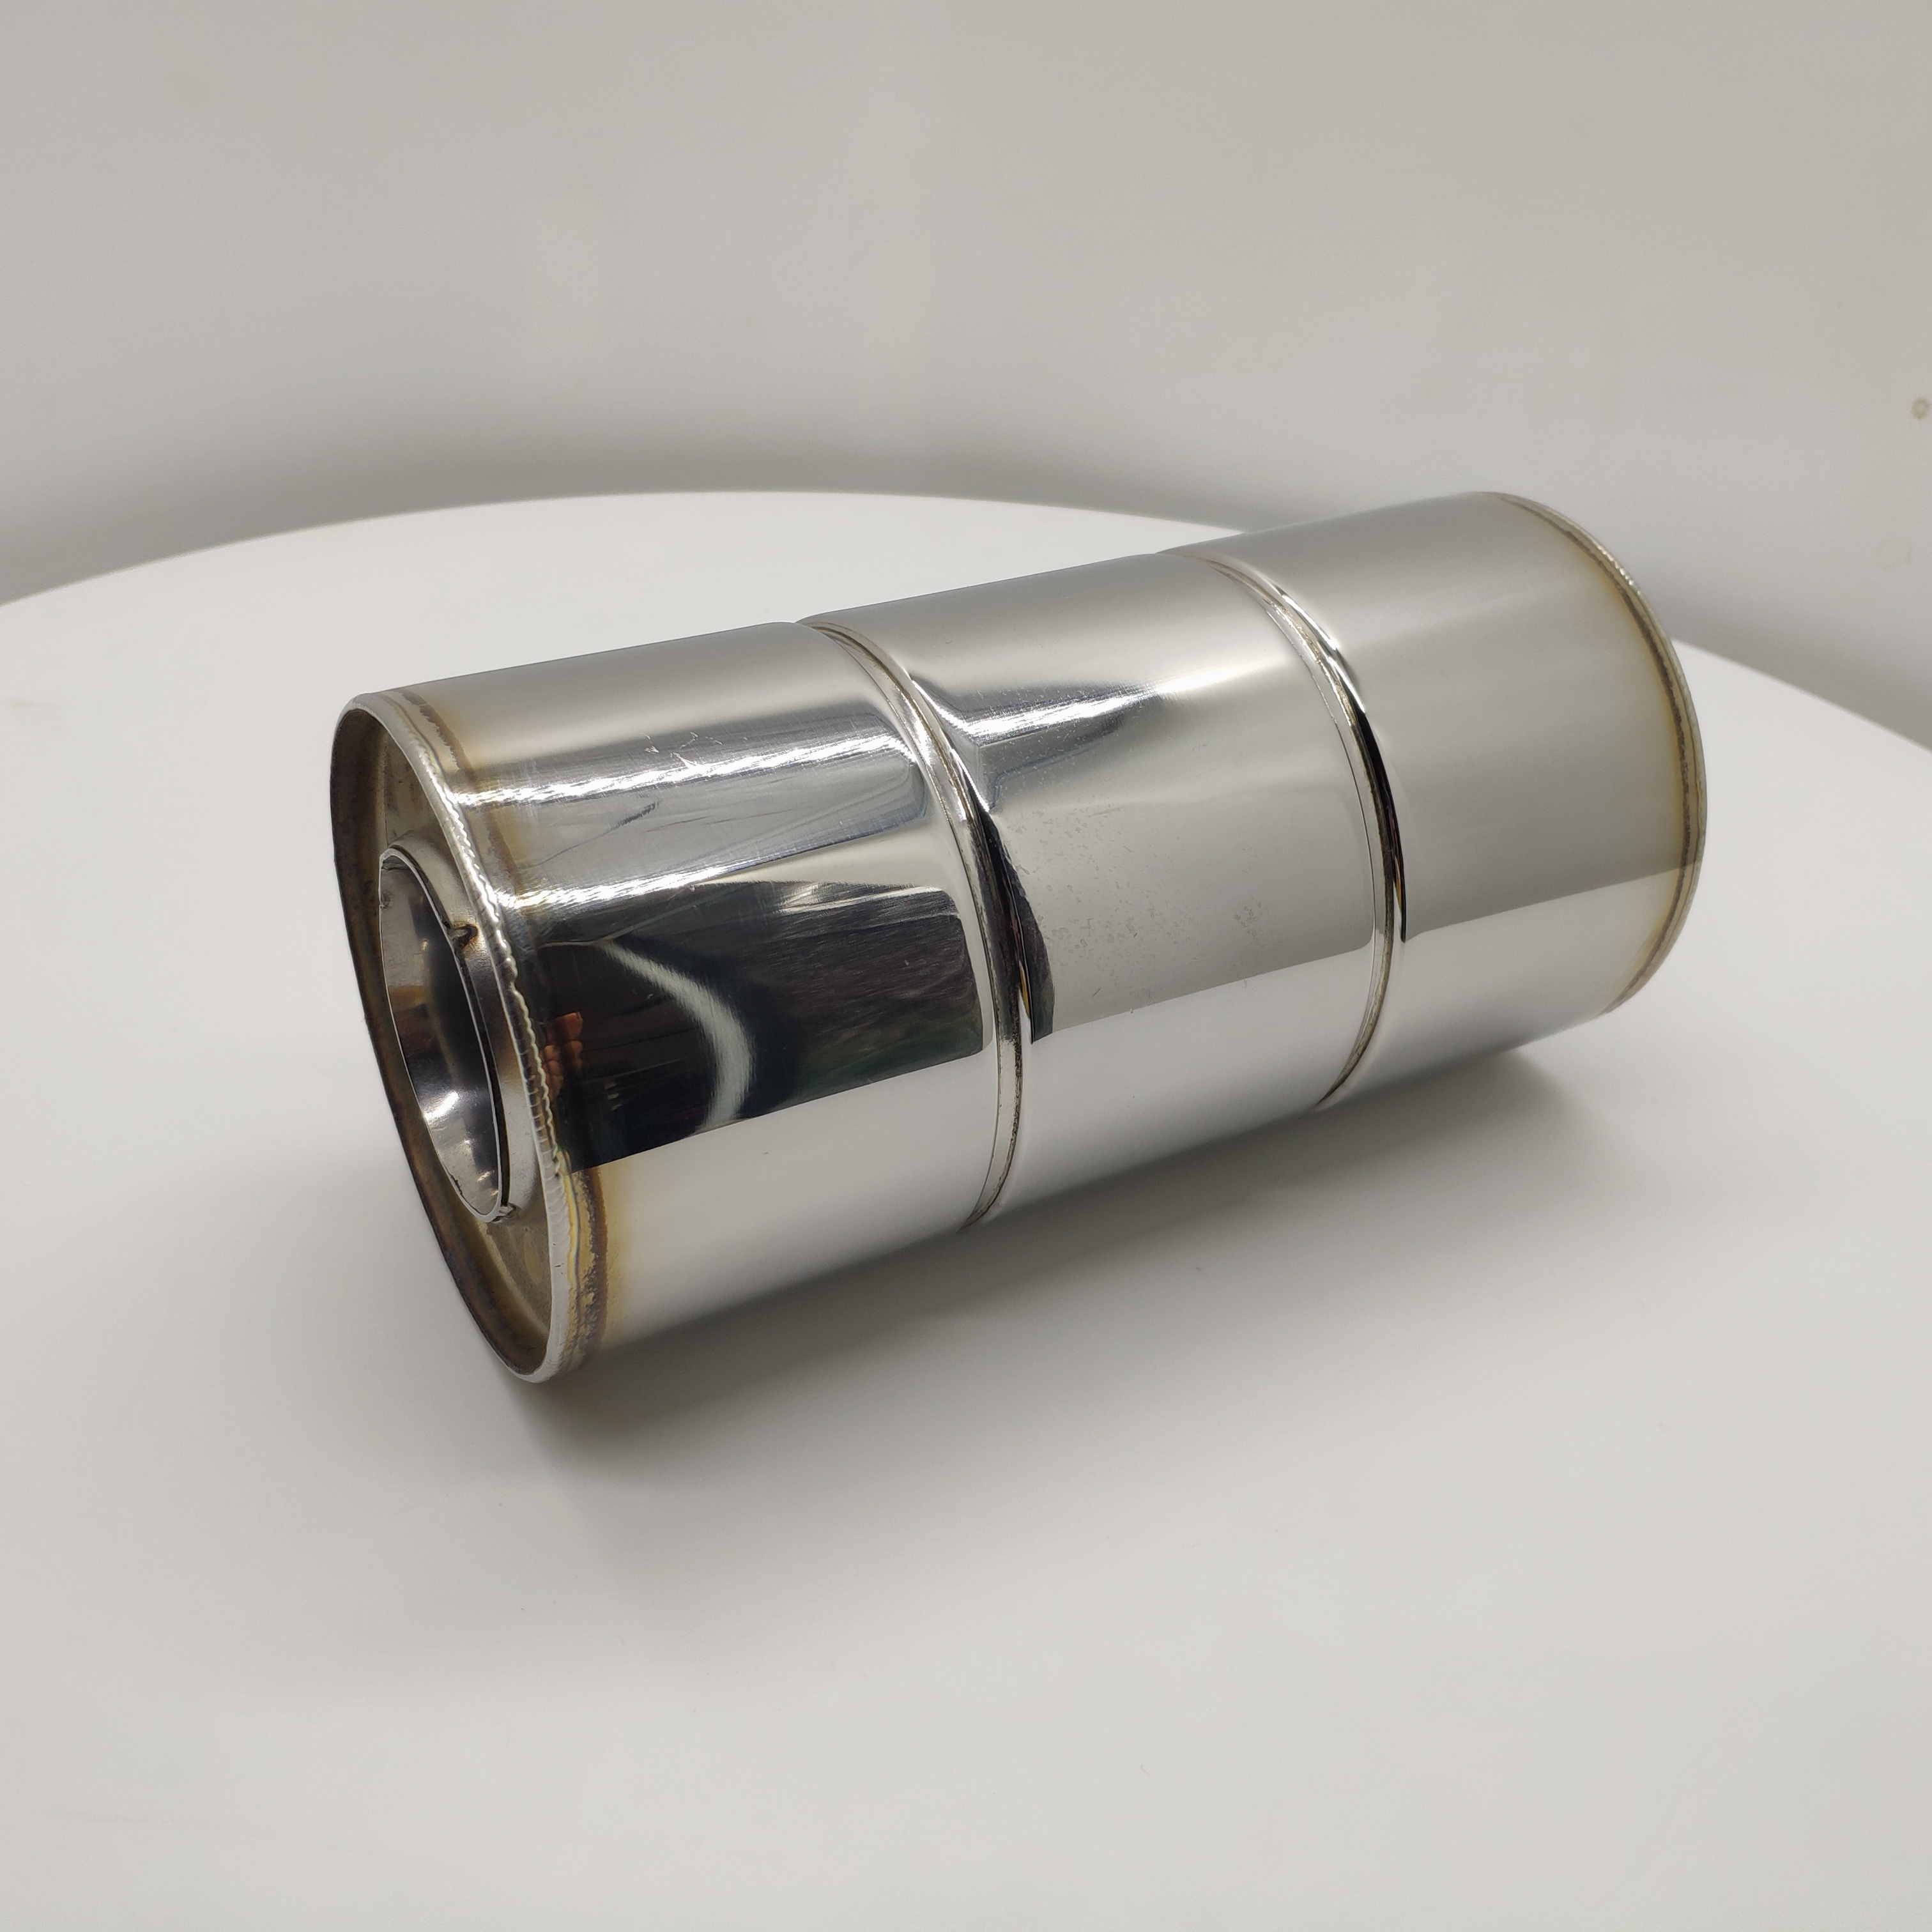 M Performance Straight Stainless Exhaust MufflerPipe Silencers